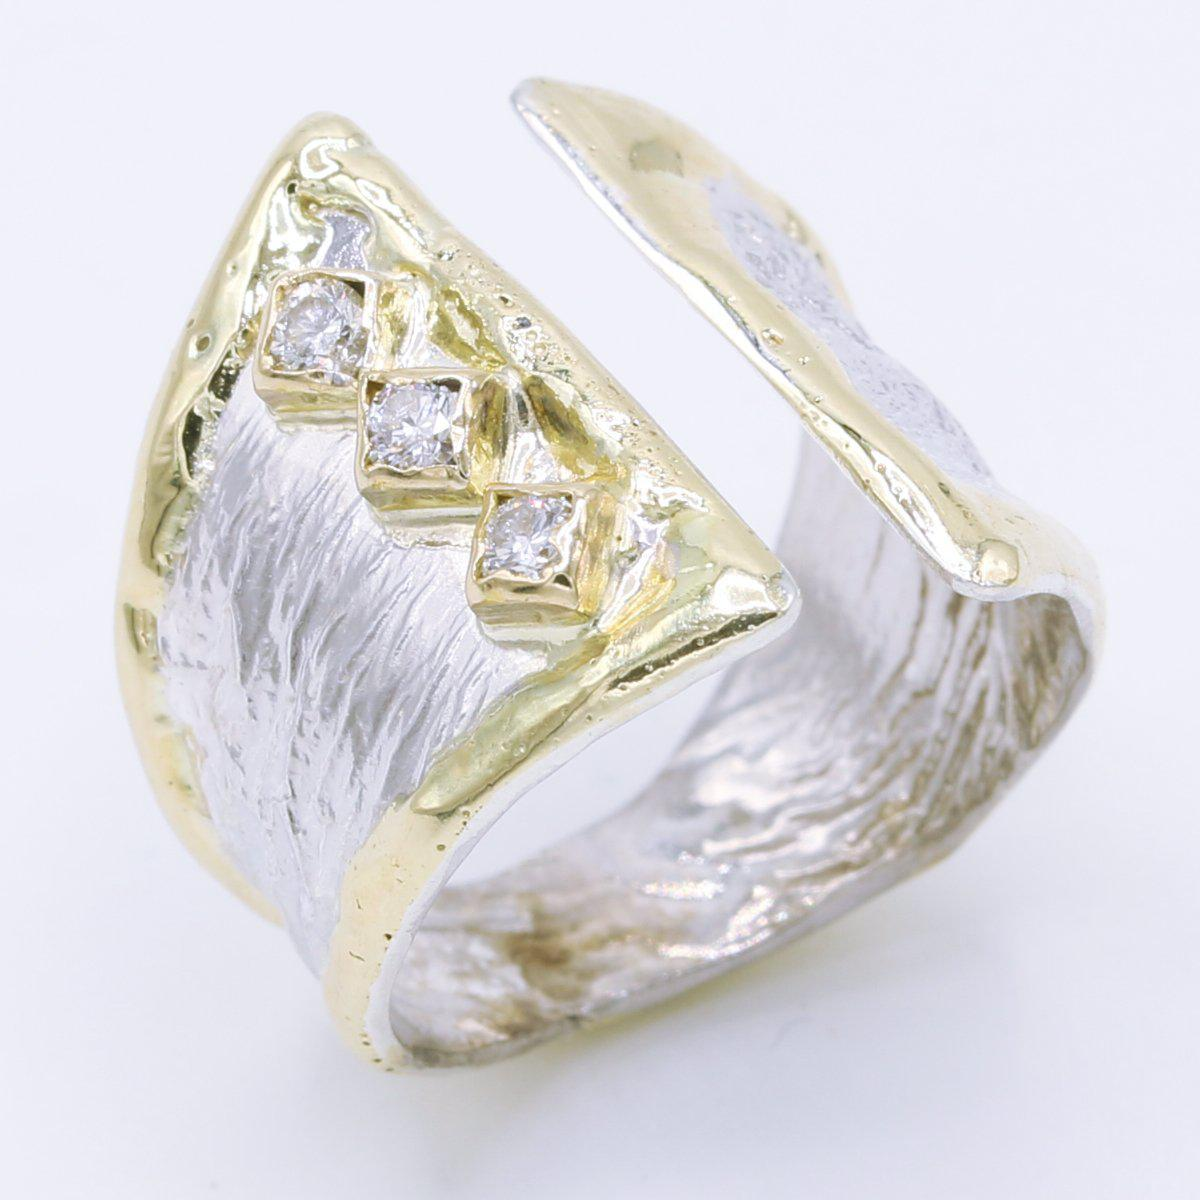 14K Gold & Crystalline Silver Diamond Ring - 34897-Fusion Designs-Renee Taylor Gallery